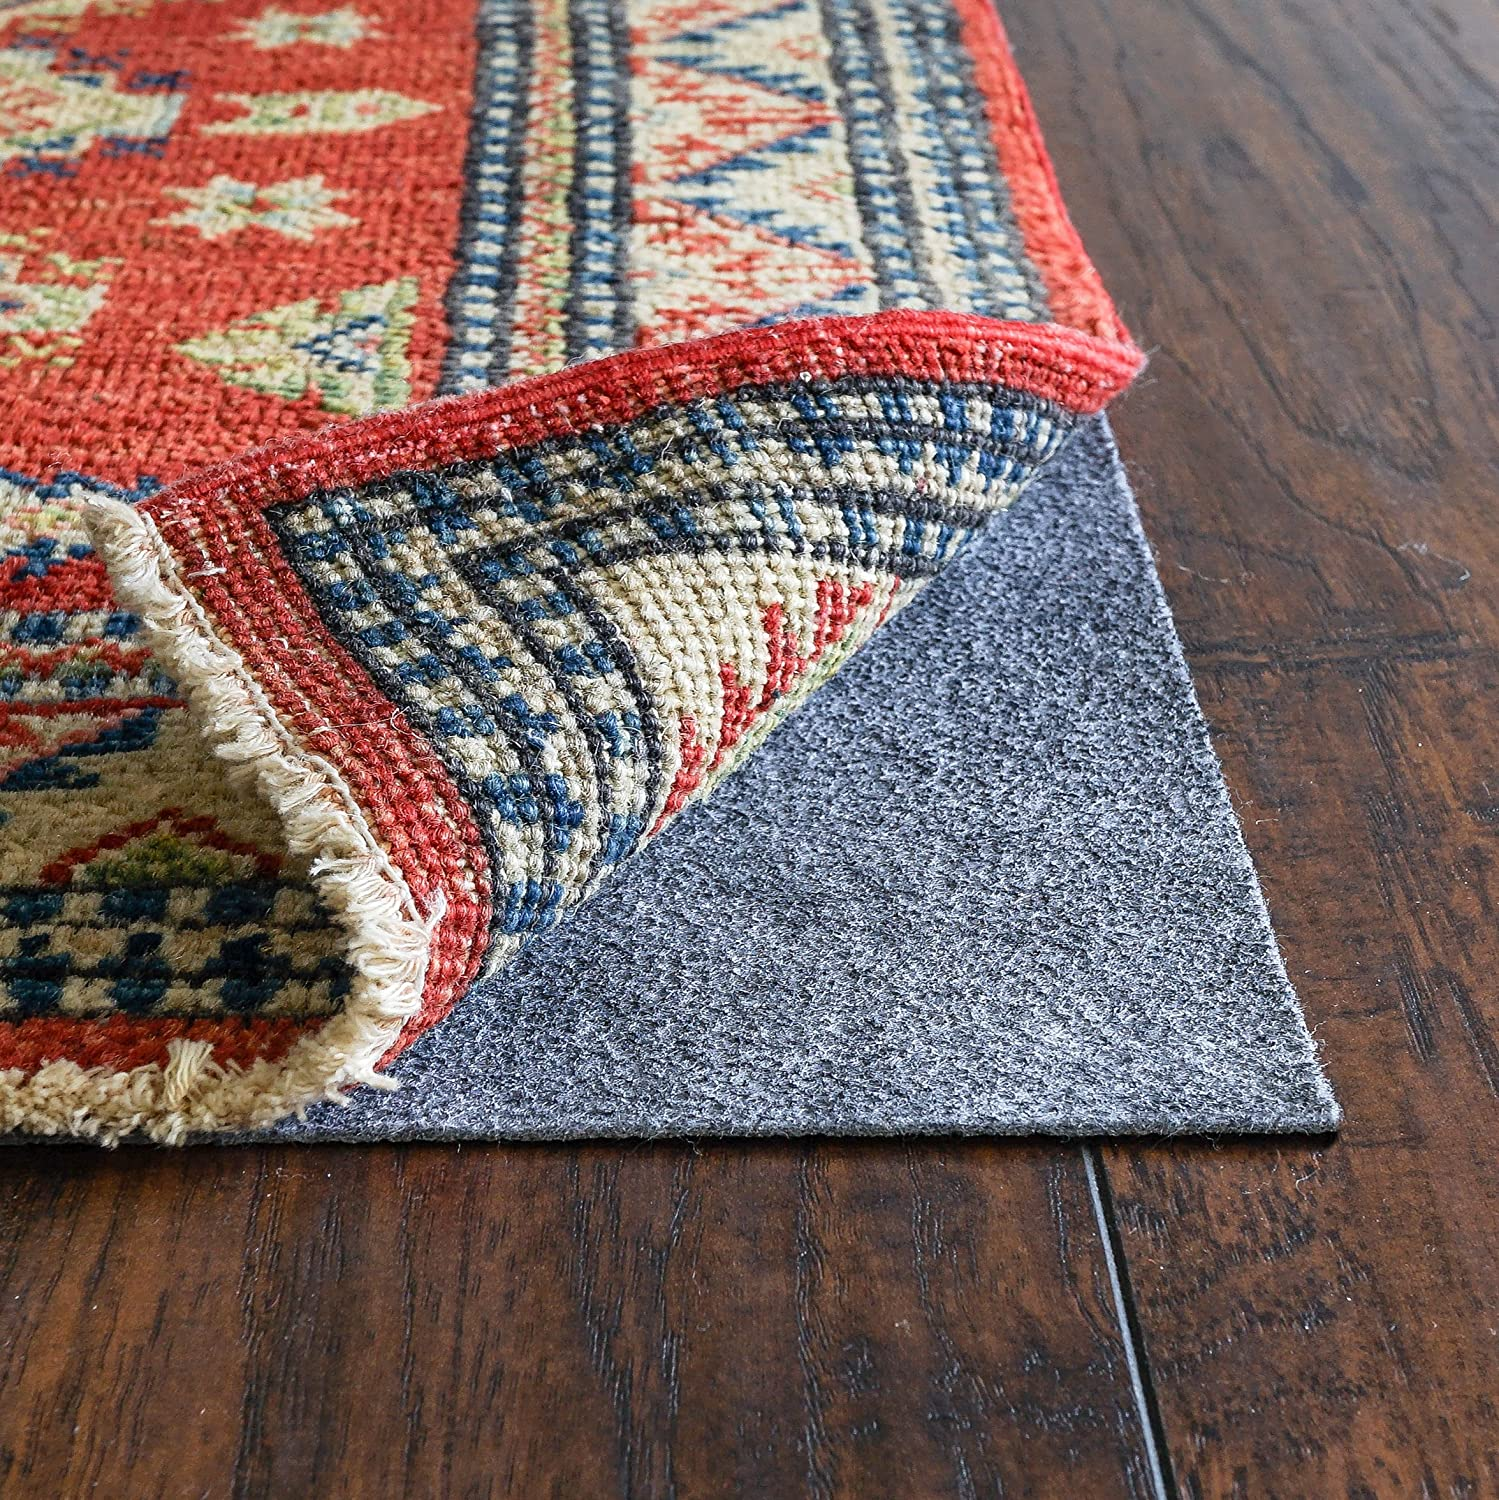 Shop RUGPADUSA, RugPro, Thick, Felt and Rubber, Ultra Slim Non-Slip Rug Pad from Amazon on Openhaus